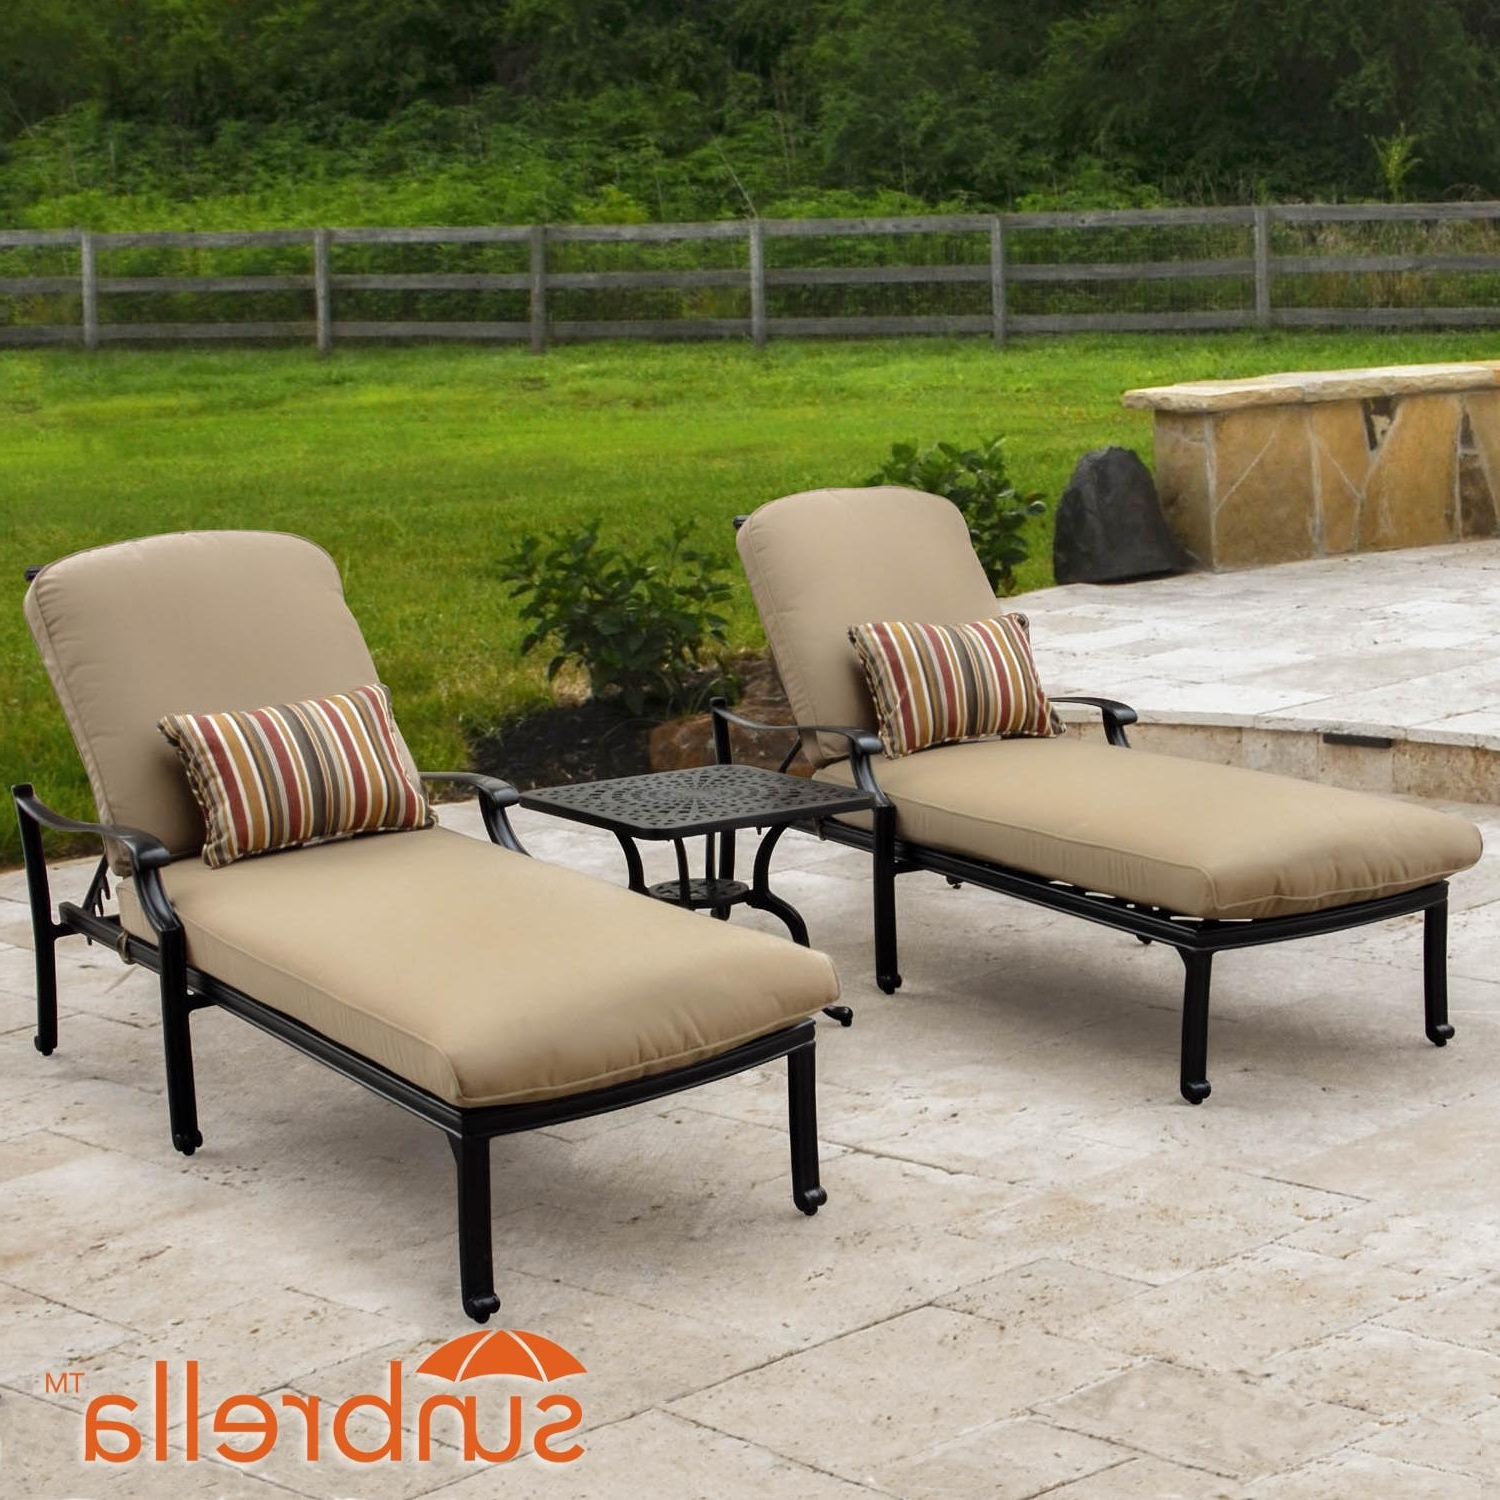 Newest Bocage 3 Piece Cast Aluminum Patio Chaise Lounge Set W/ Sunbrella In Patio Chaise Lounges (View 2 of 15)